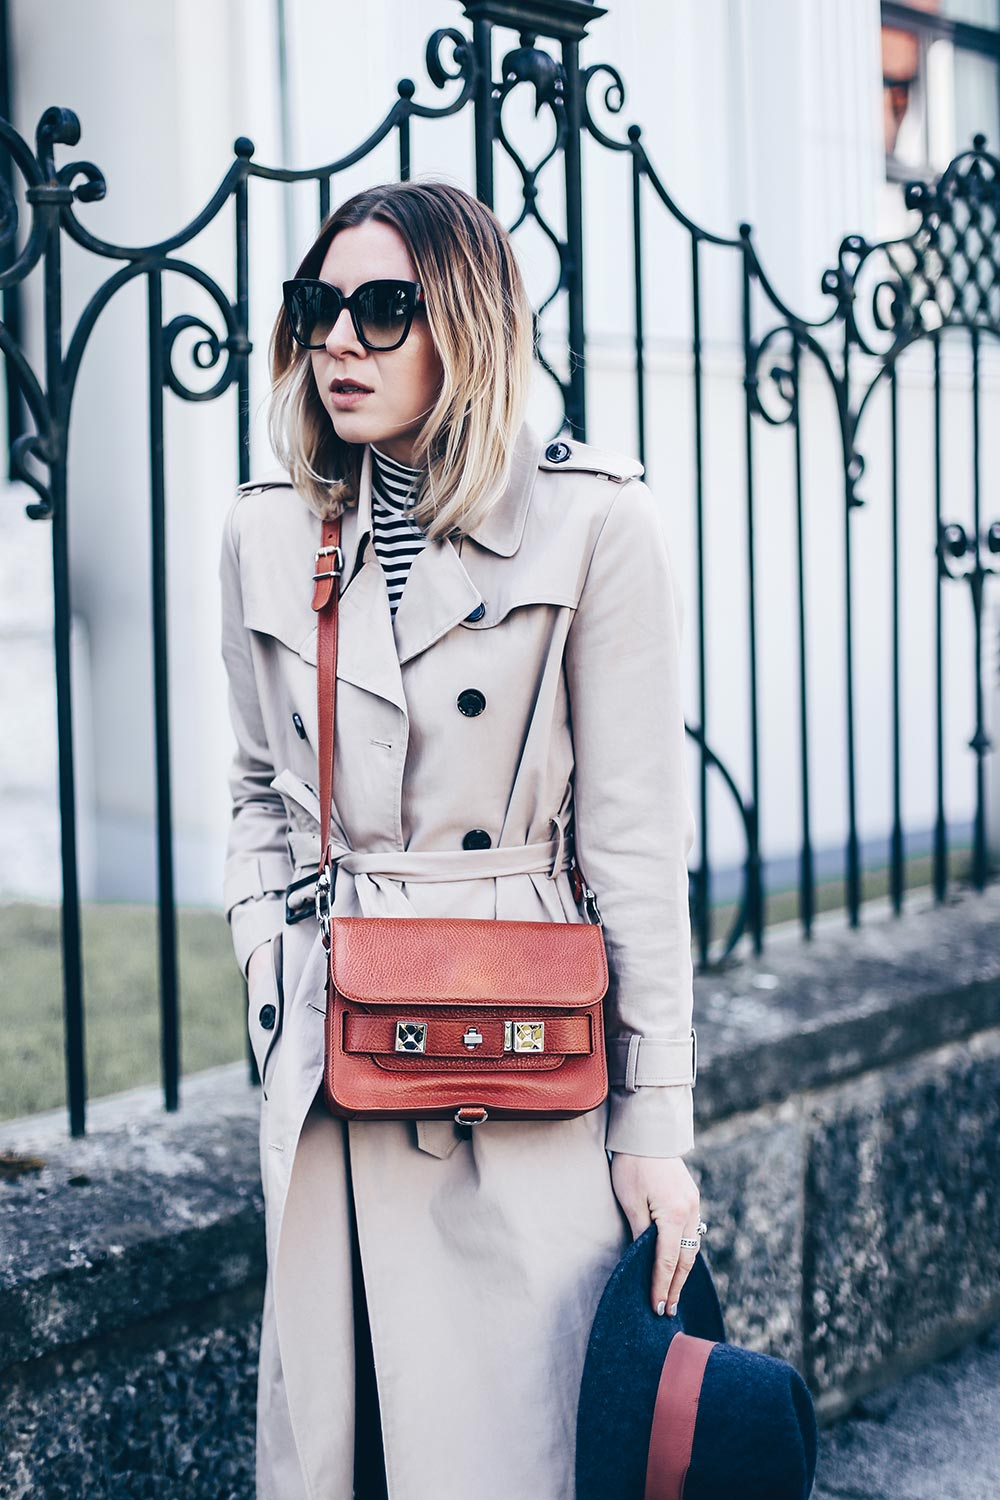 casual chic style und outfit mit J'Adior Pumps, Proenza Schouler PS11 Tasche, Trenchcoat und Skinny Jeans, Fashion Blog, Outfit Blog, Modeblog, Streetstyle 2017, www.whoismocca.com